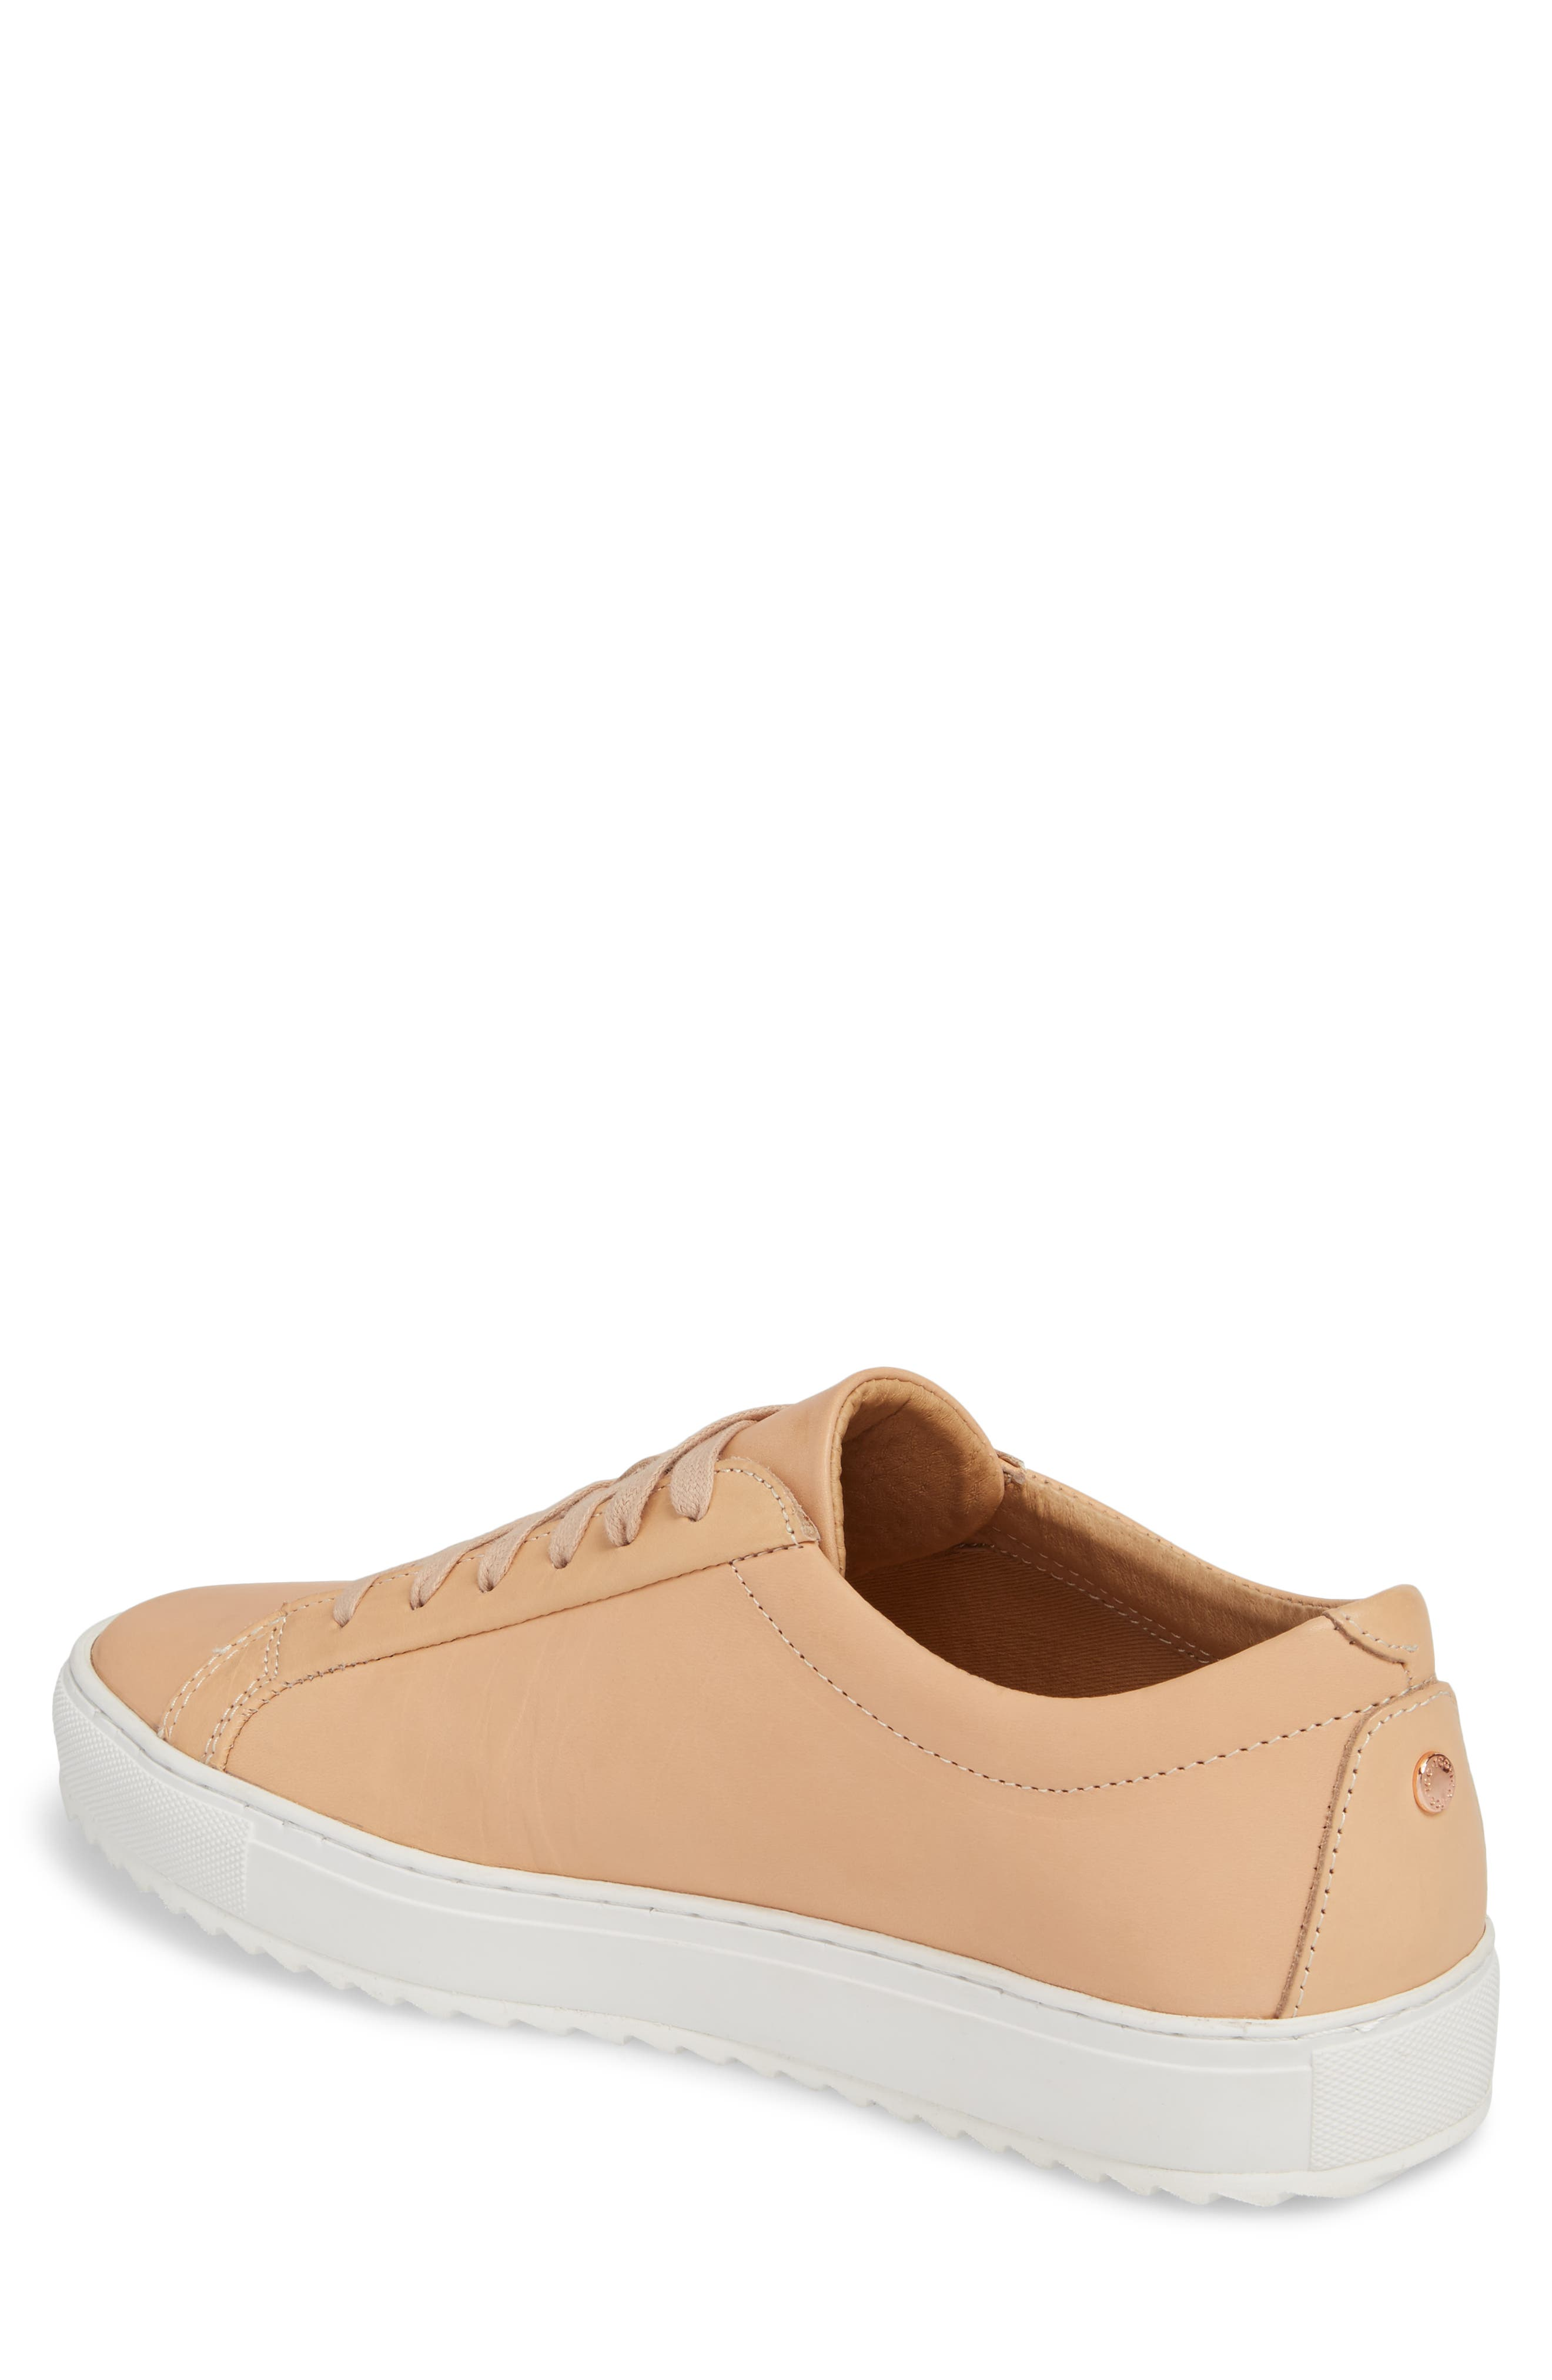 Kennedy Lugged Sneaker,                             Alternate thumbnail 2, color,                             Natural Leather